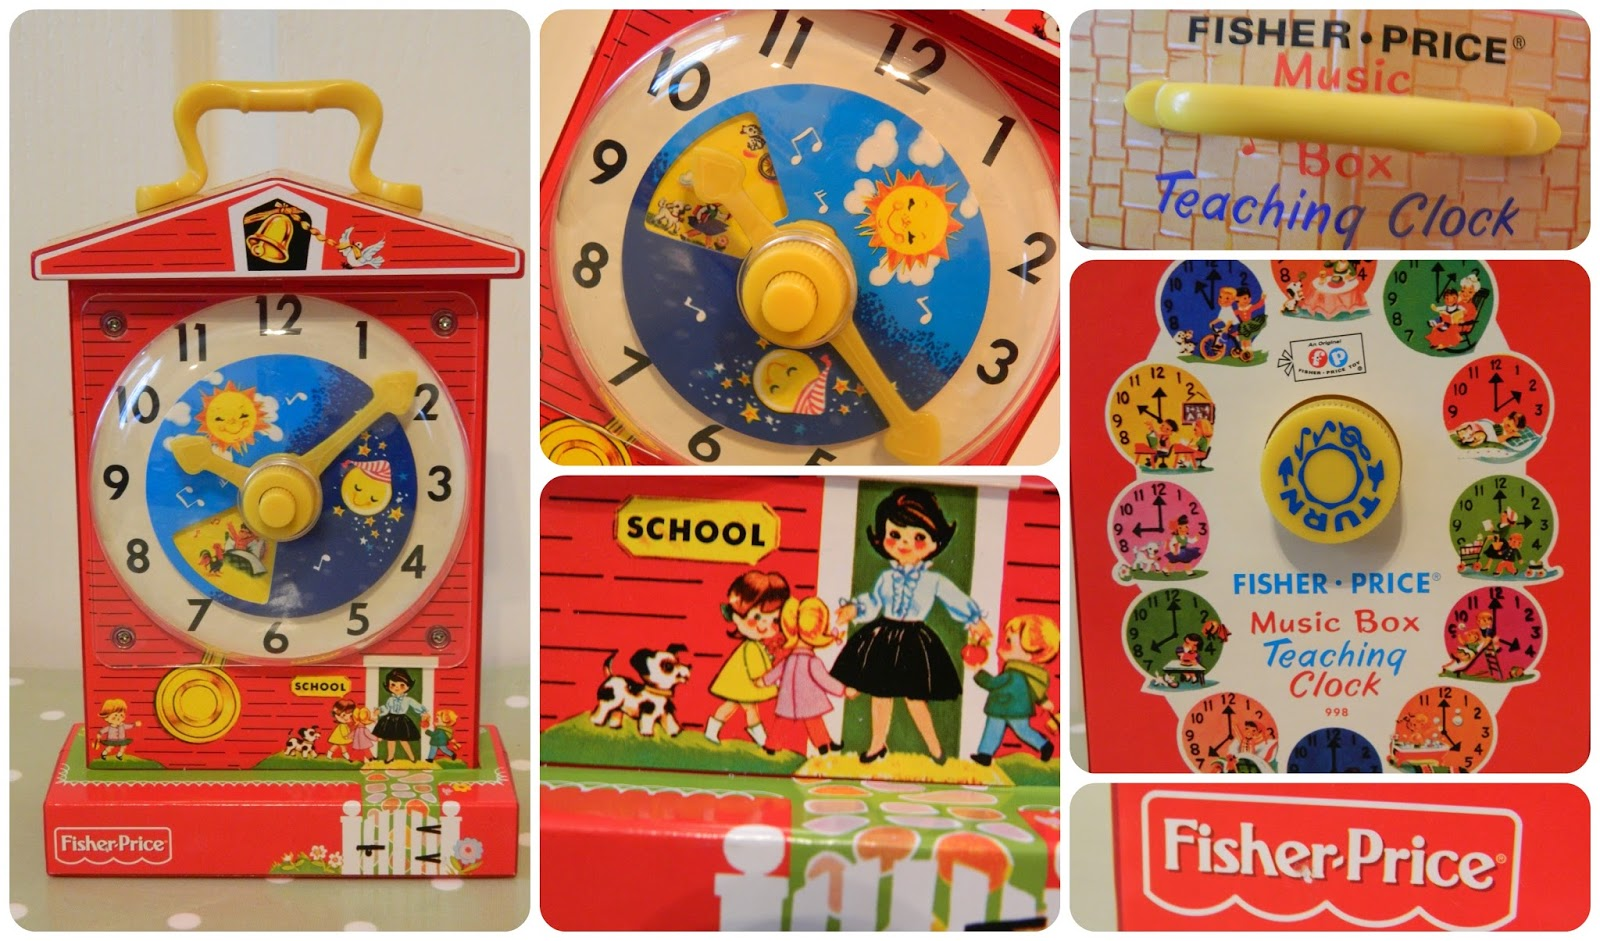 Fisher-Price Music Box Teaching Clock